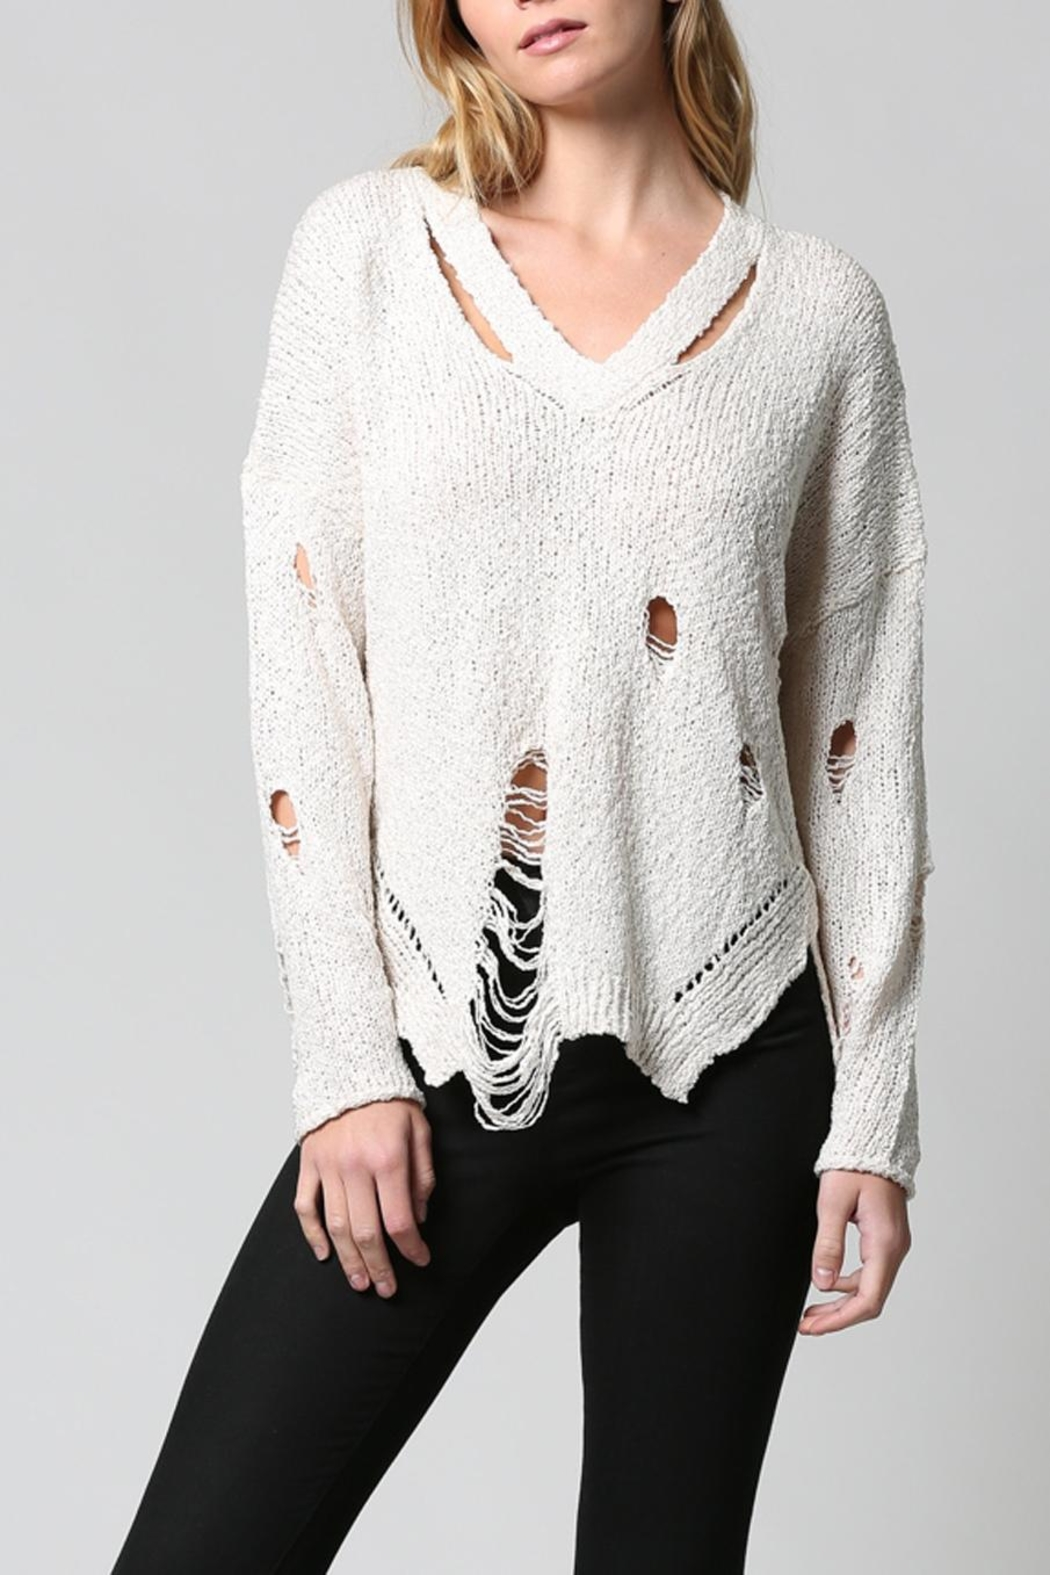 FATE by LFD Distressed Sweater - Back Cropped Image